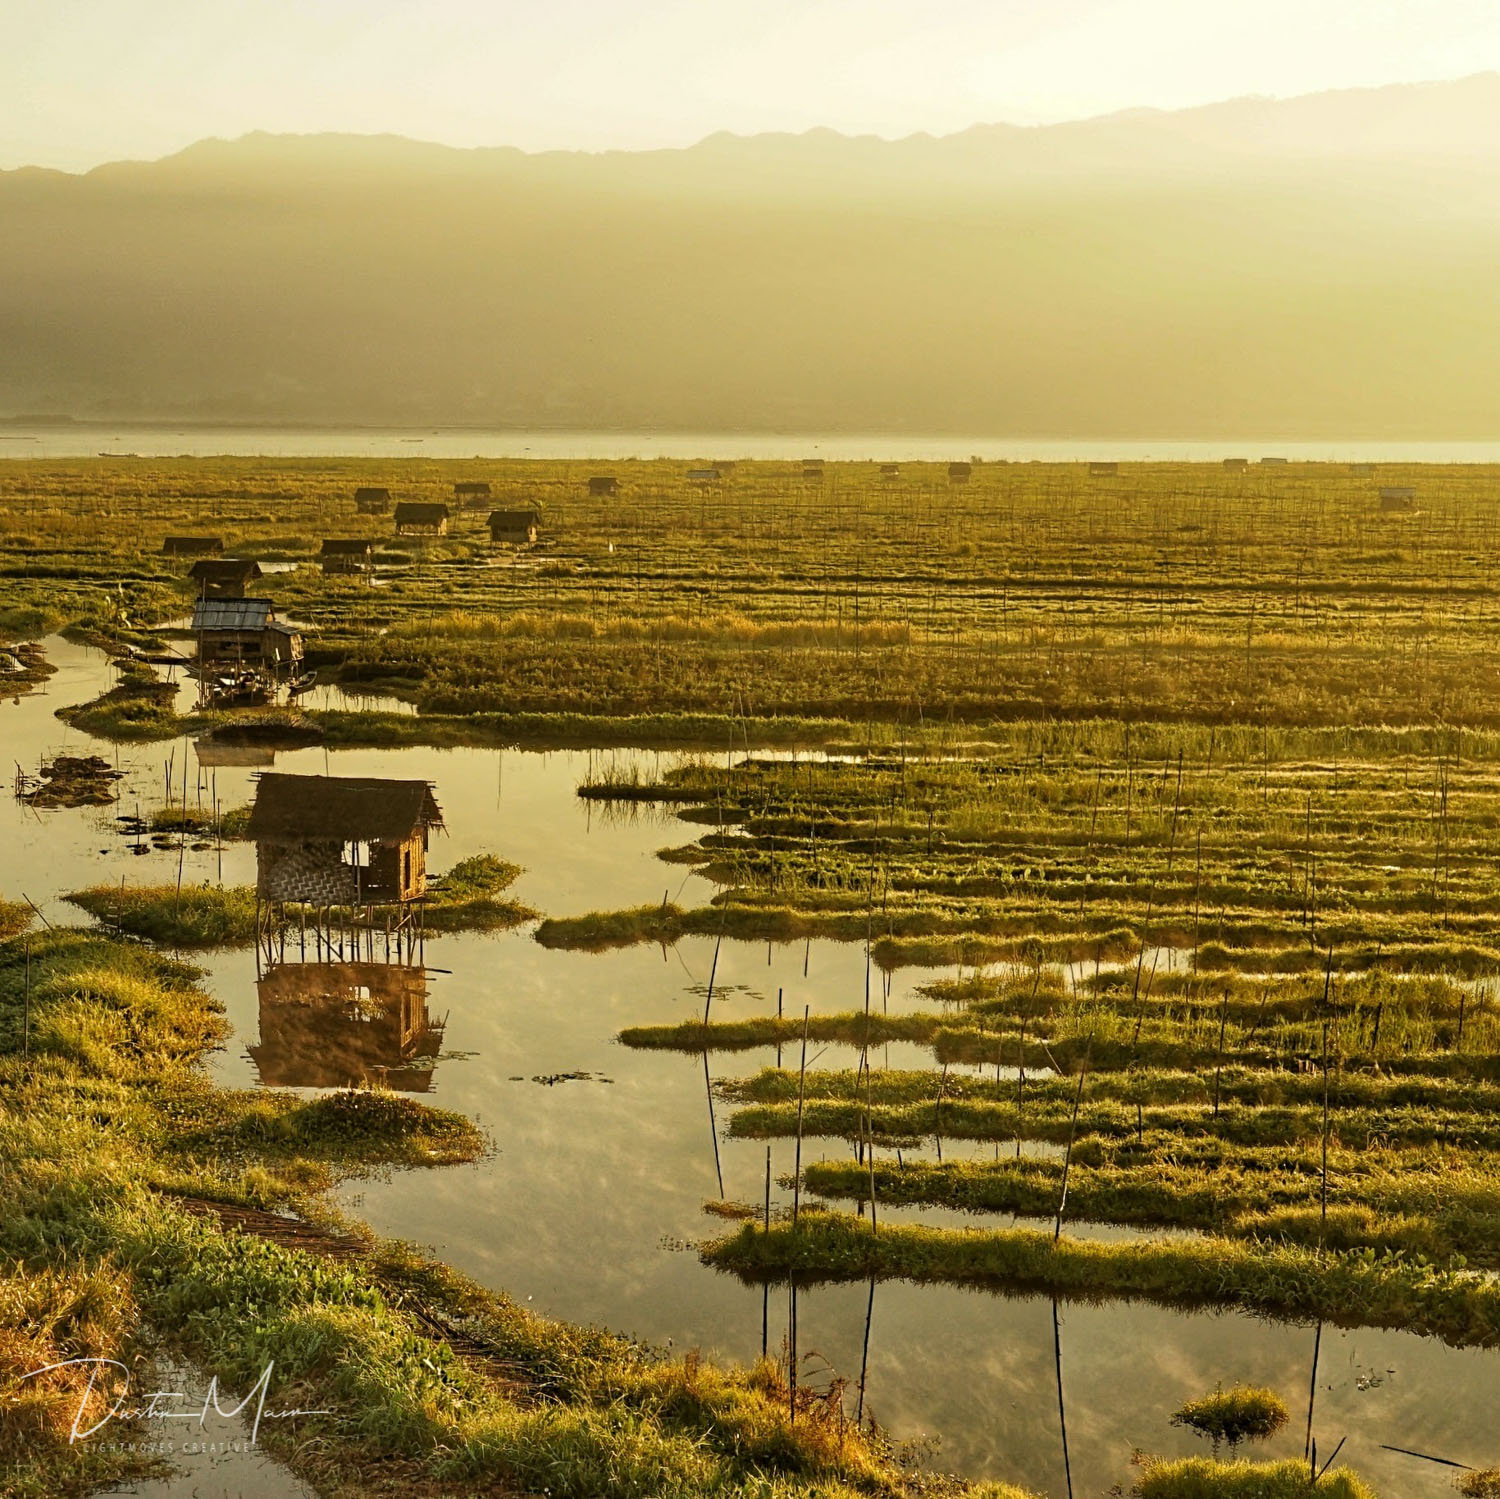 The sun paints a golden glow over the floating gardens and rest houses over Inle Lake.  © Dustin Main 2017